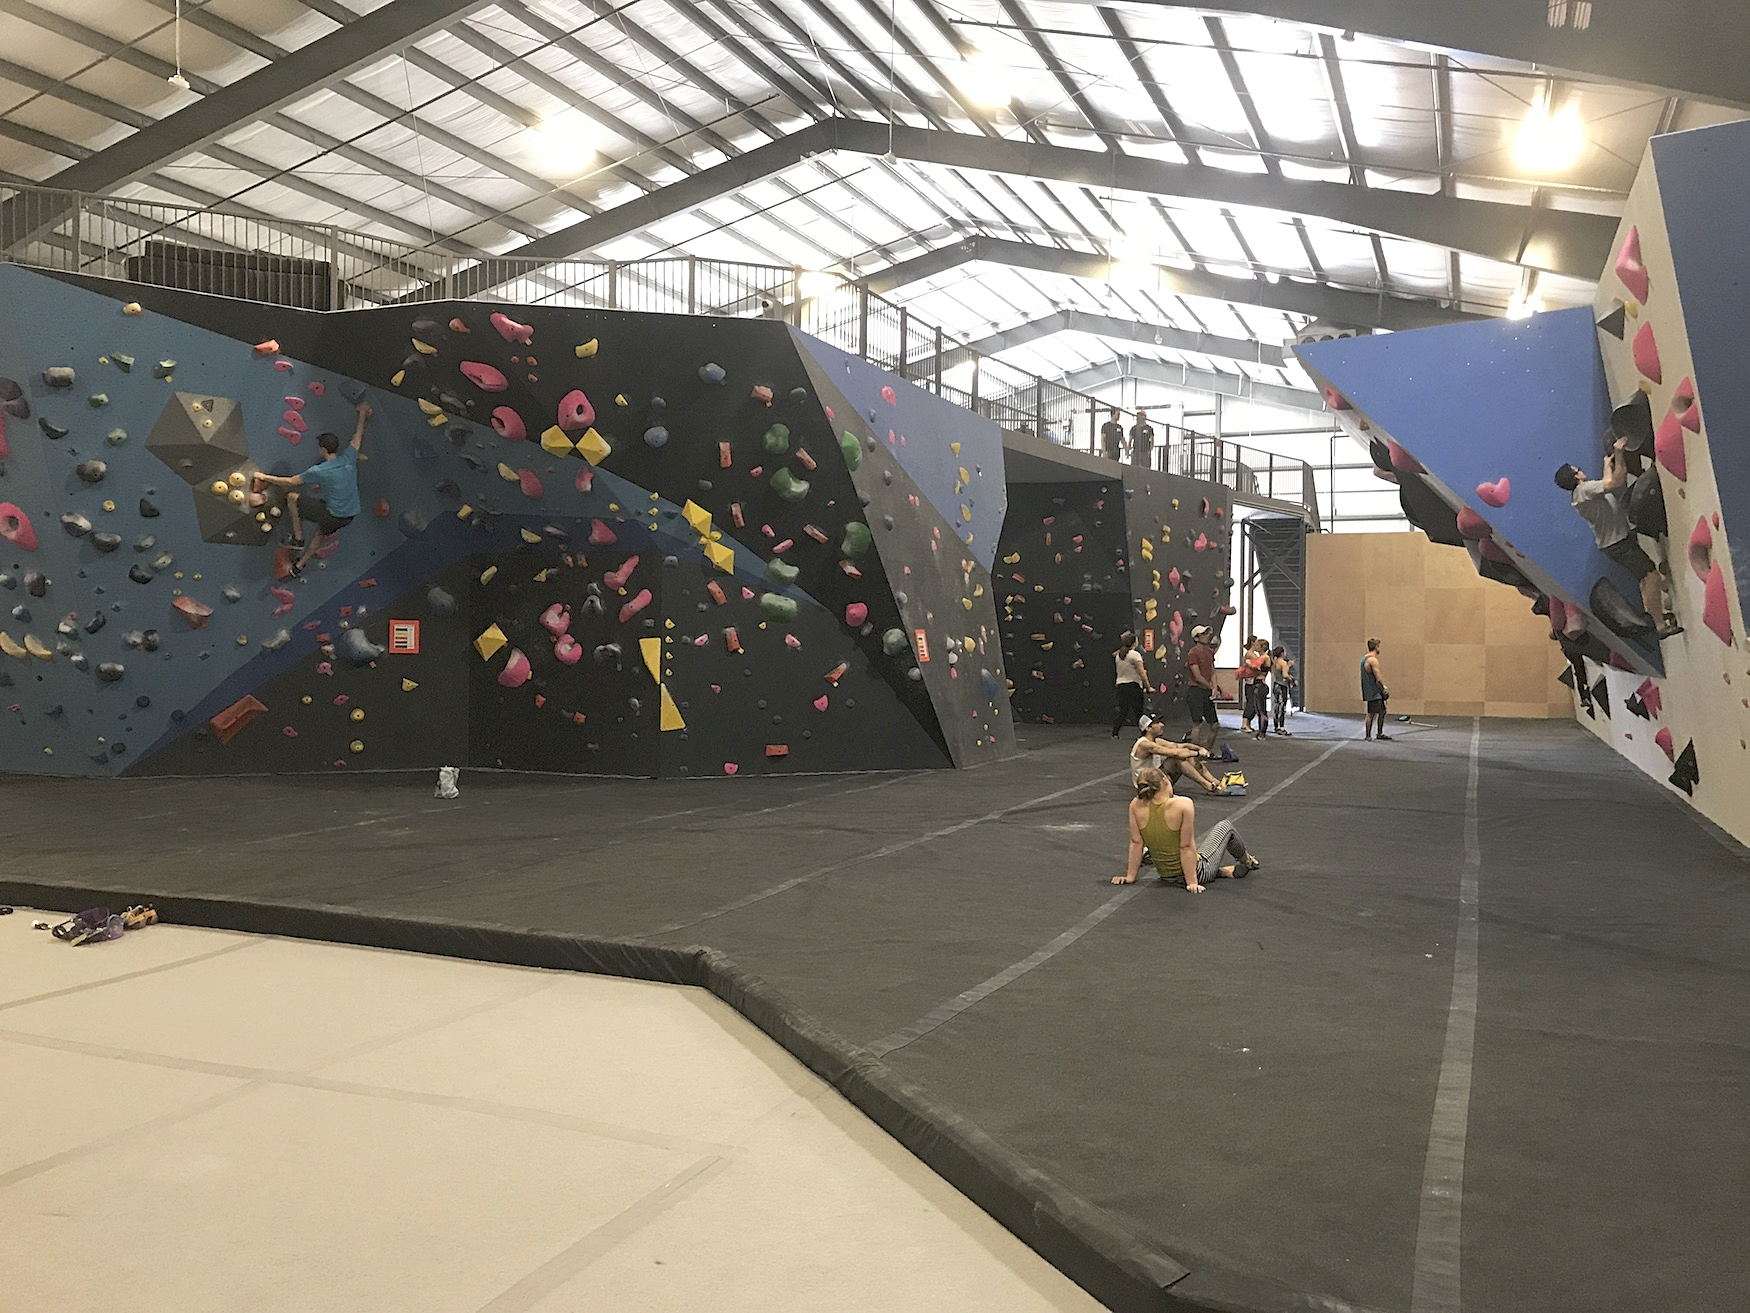 5,000+ sq. ft. of bouldering